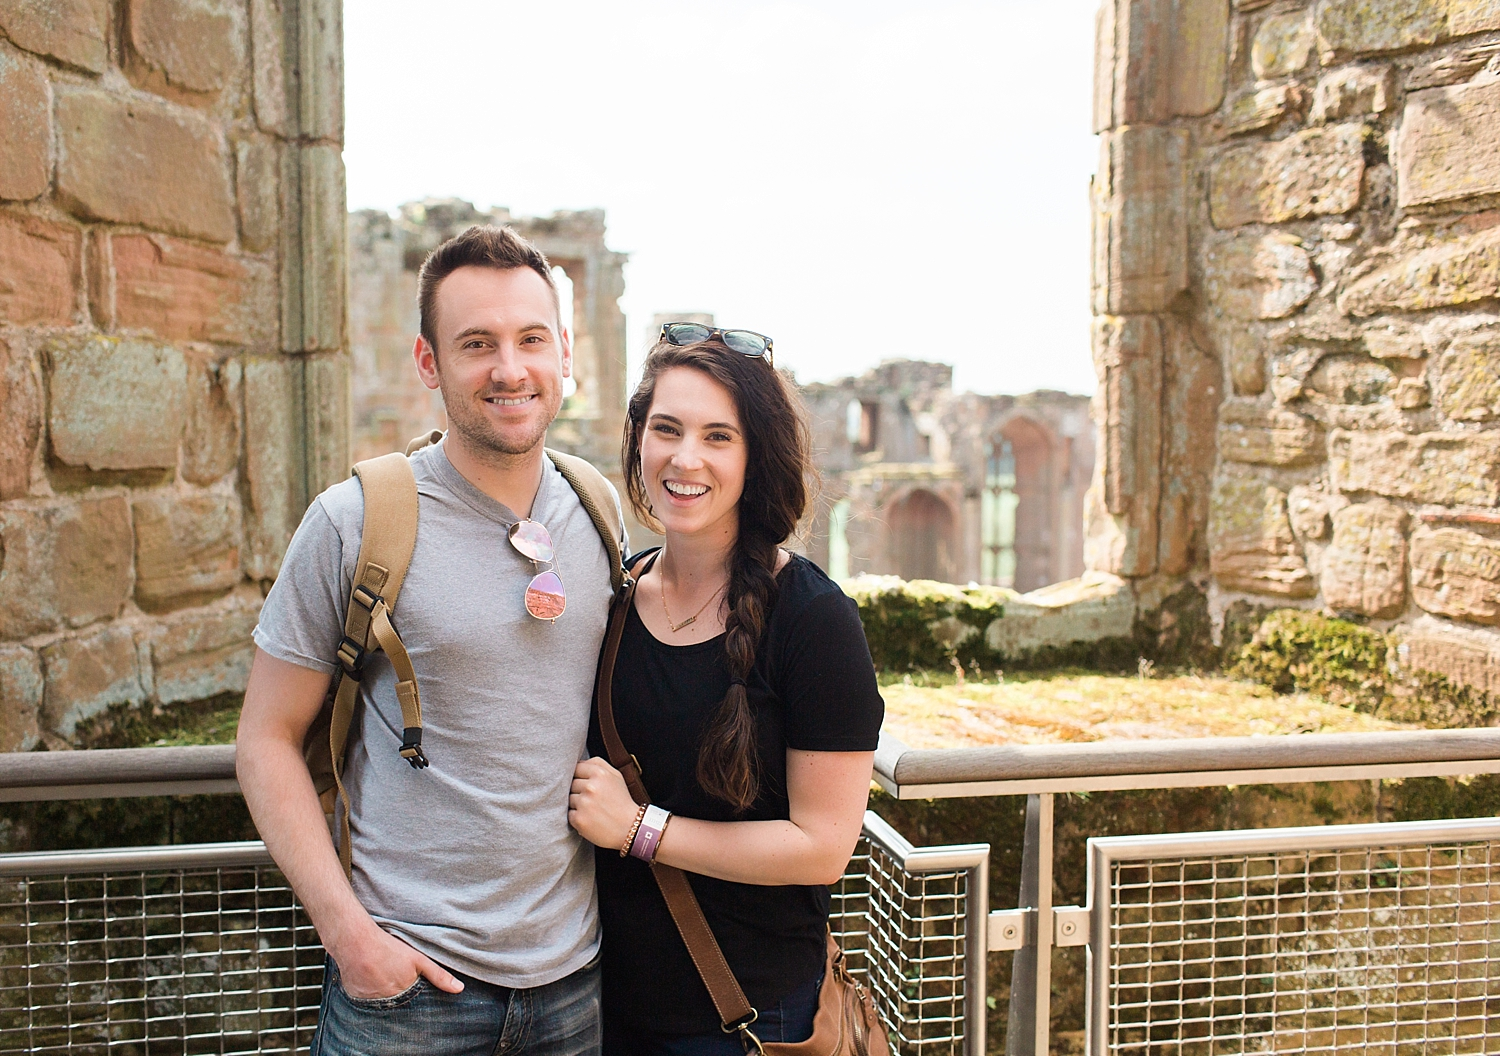 Happy tourists in a castle ❤️